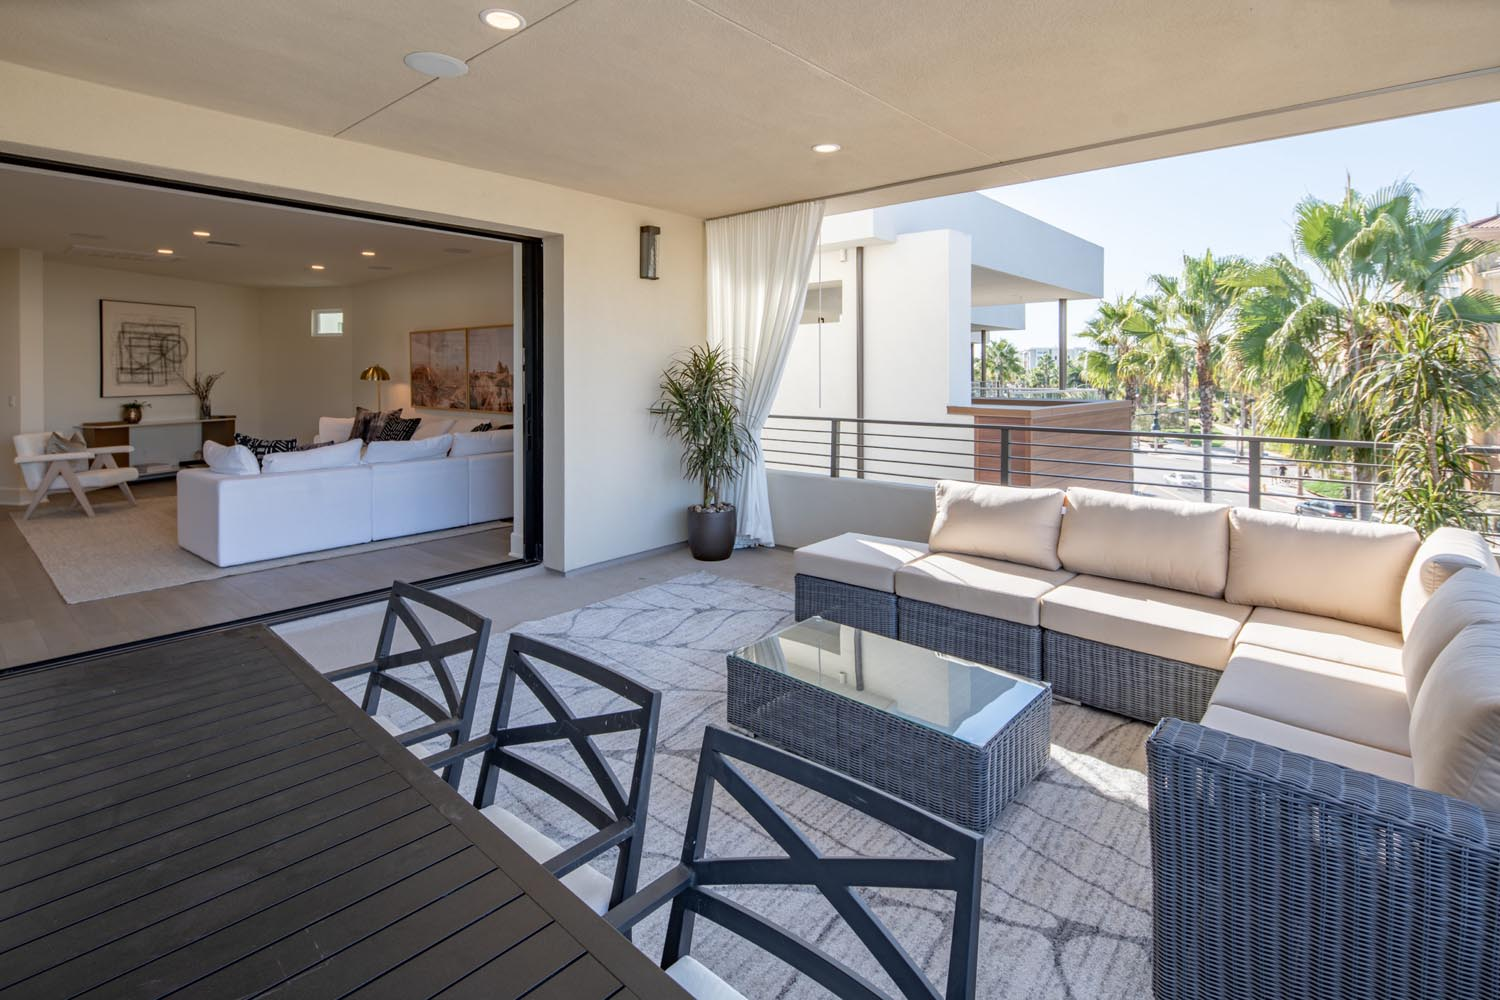 Residence 2 Patio | The Collection at Playa Vista in Los Angeles, CA | Brookfield Residential